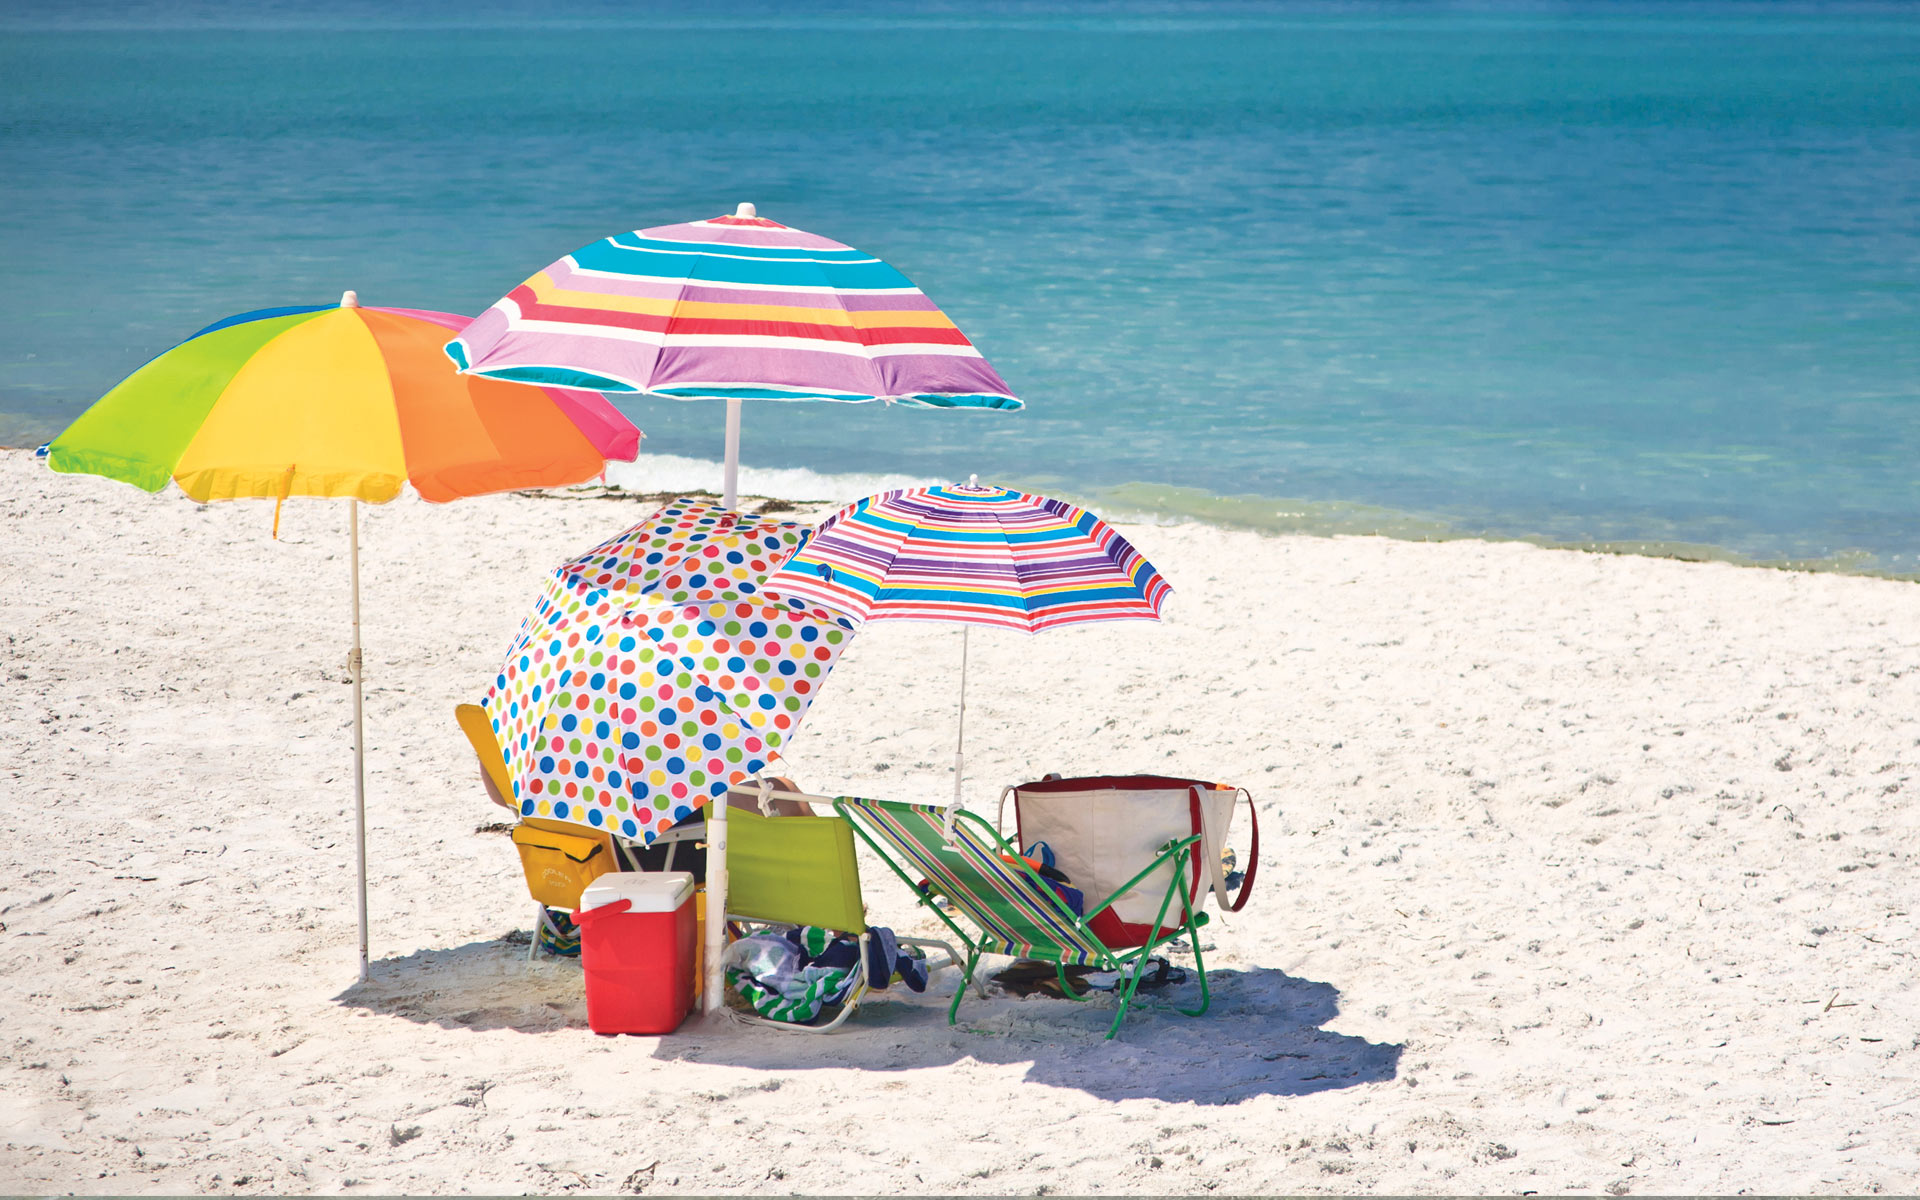 santa rosa beach single guys Explore an array of santa rosa beach, fl vacation rentals, including condos, houses & more bookable online choose from more than 10,000 properties, ideal house rentals for families, groups and couples rent a whole home for your next vacation.